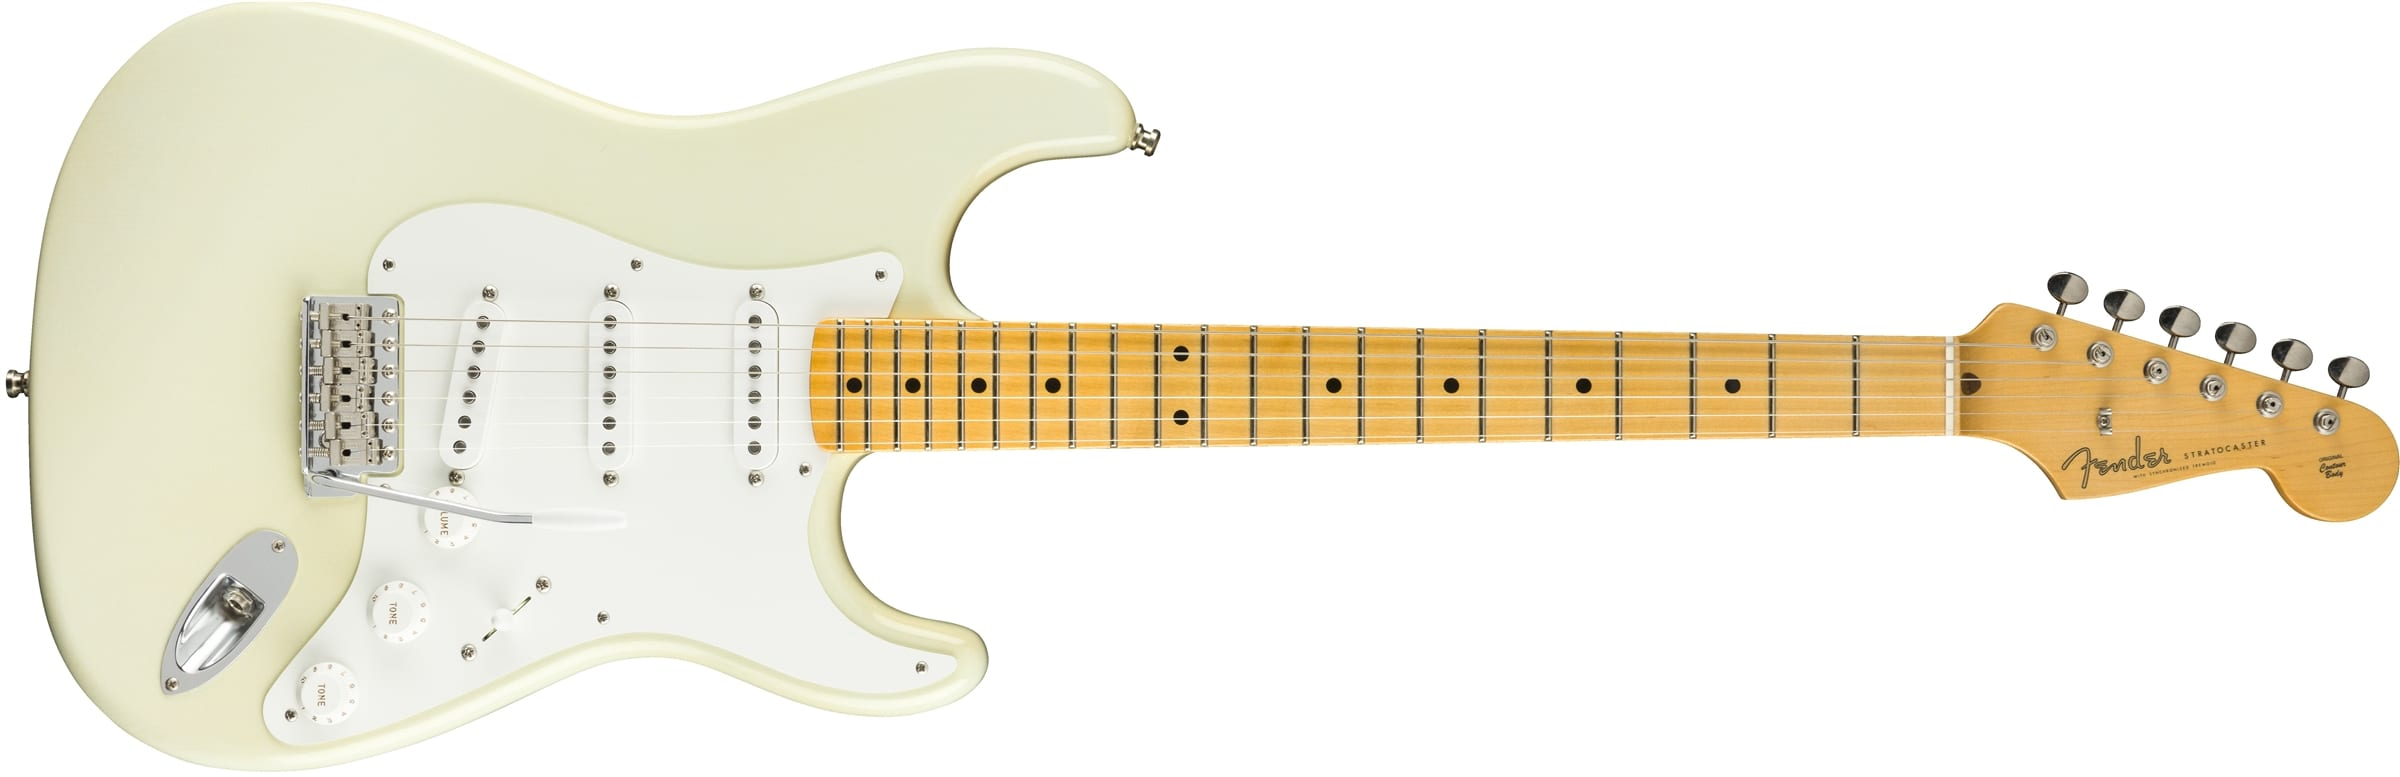 Fender Custom Shop Jimmie Vaughan Stratocaster in Aged Olympic White